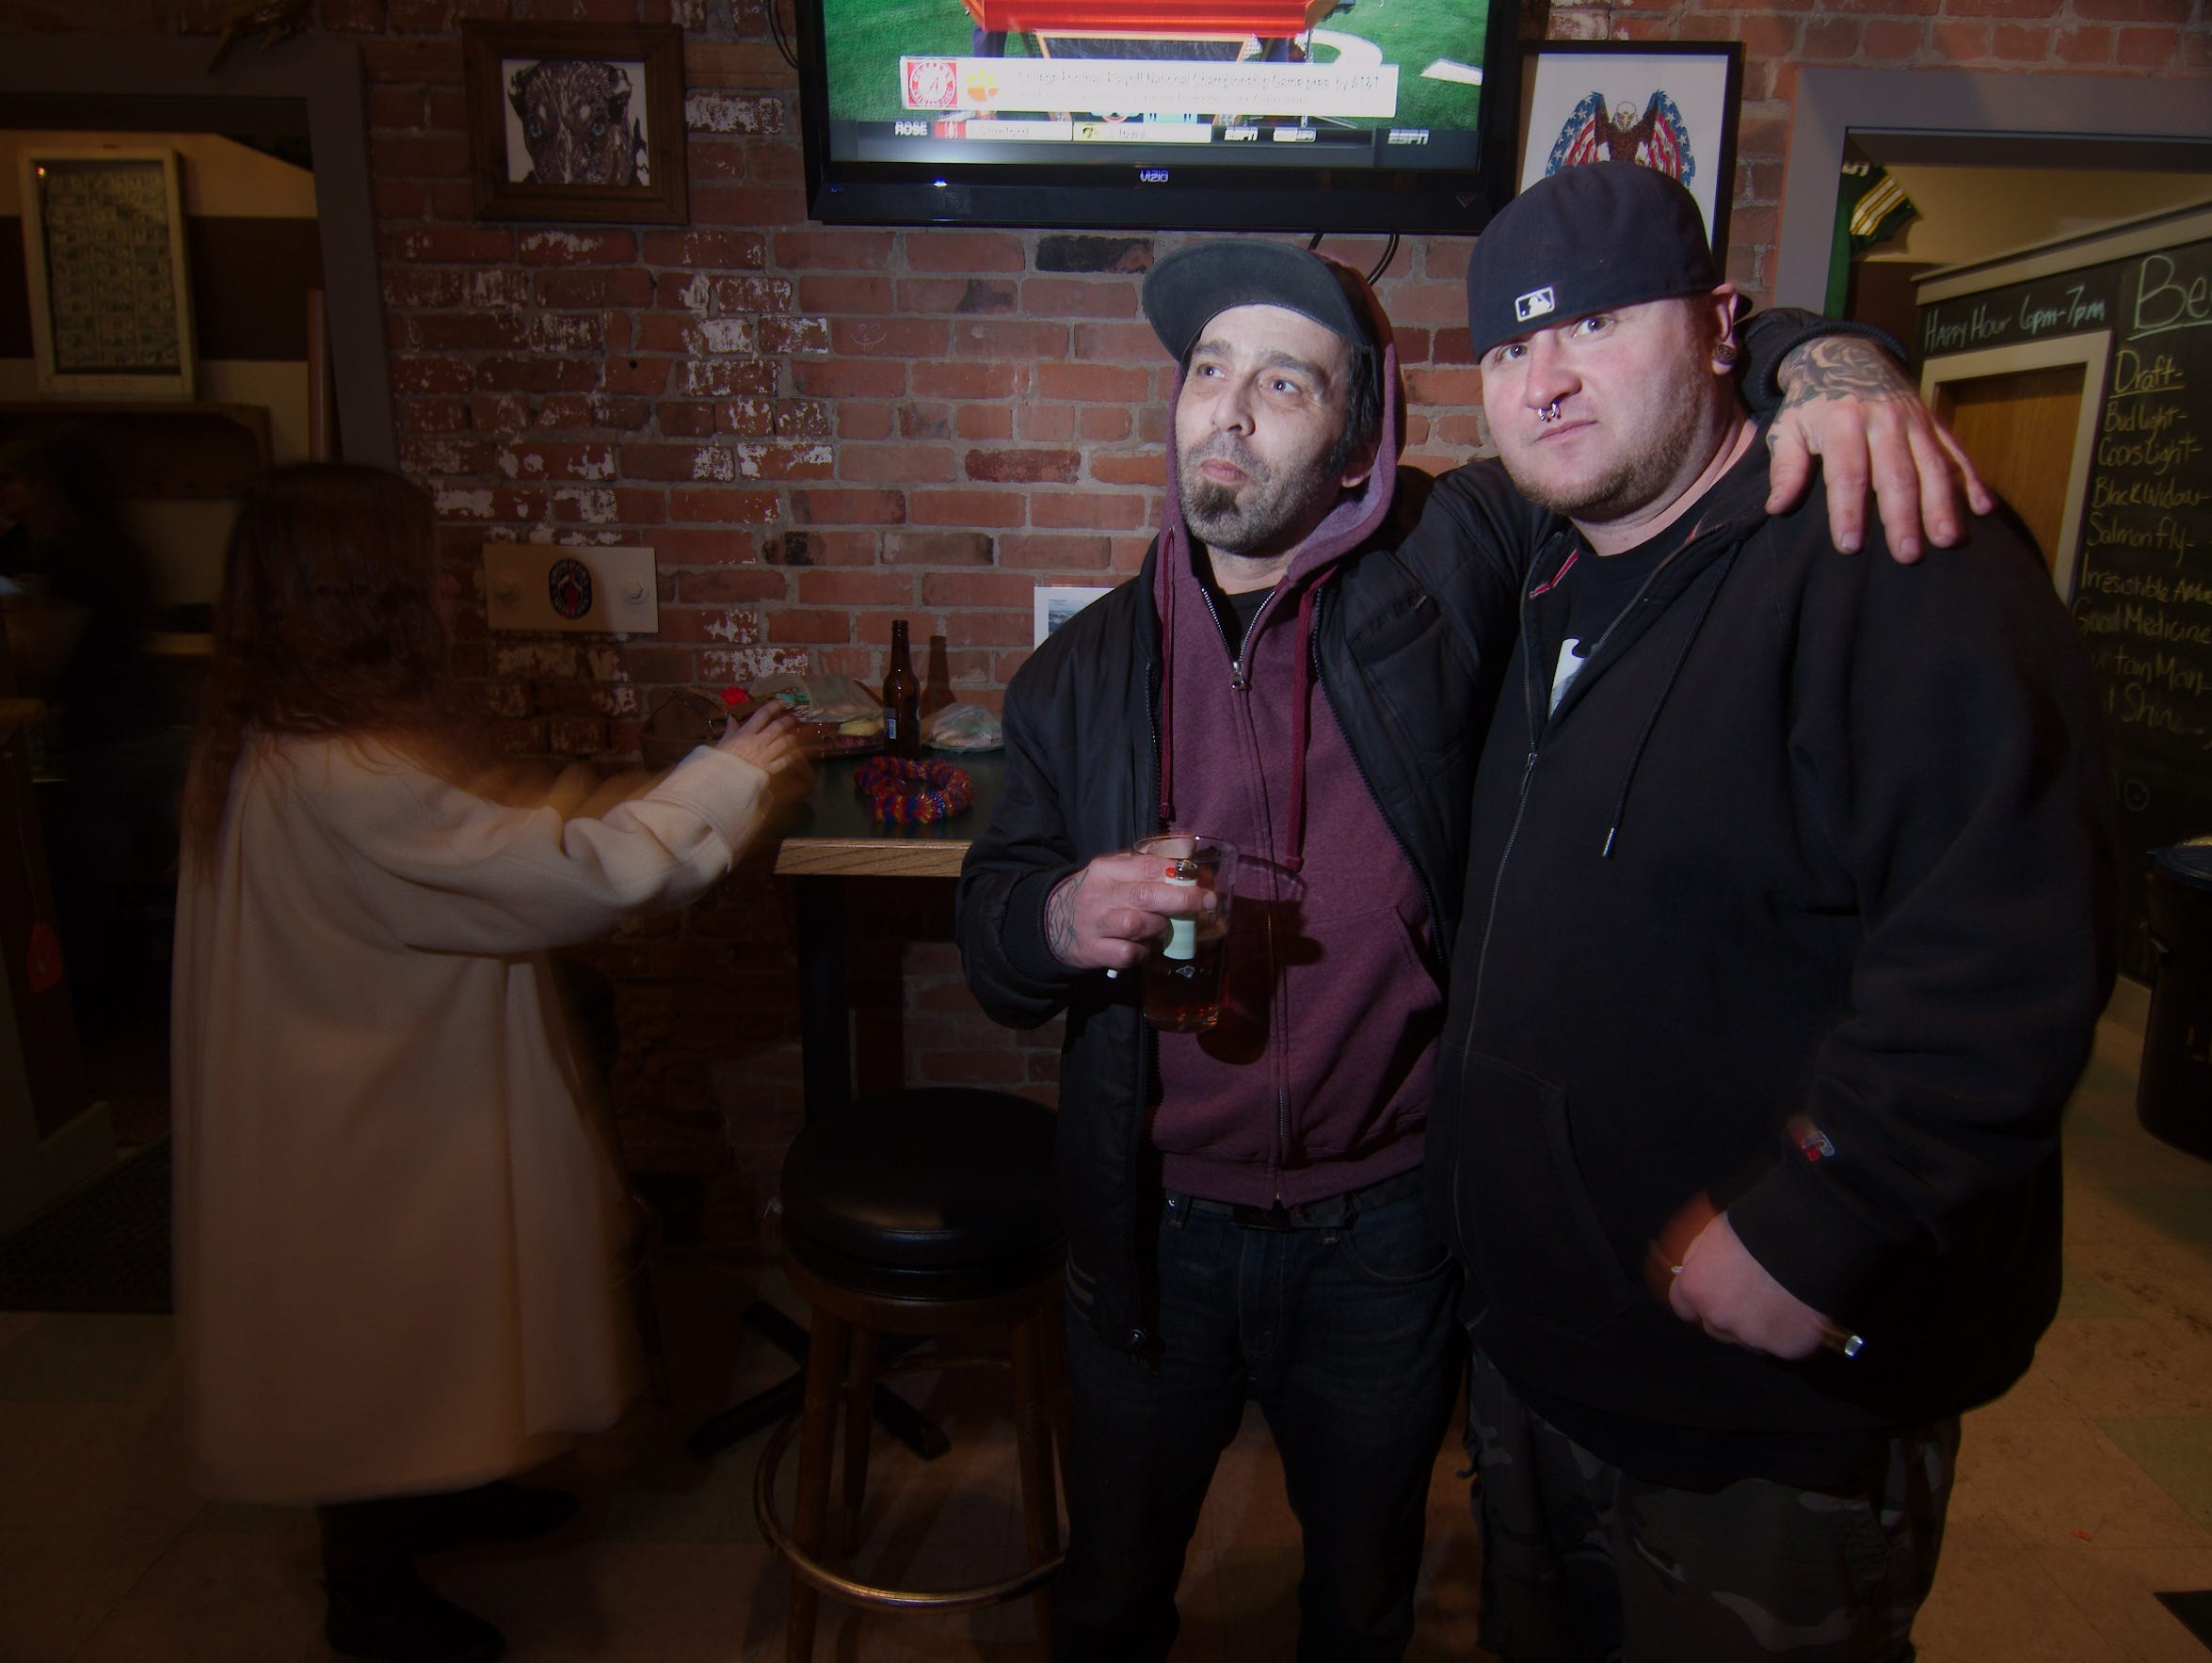 Aaron Hicks and friend enjoy drinks at the Back Alley